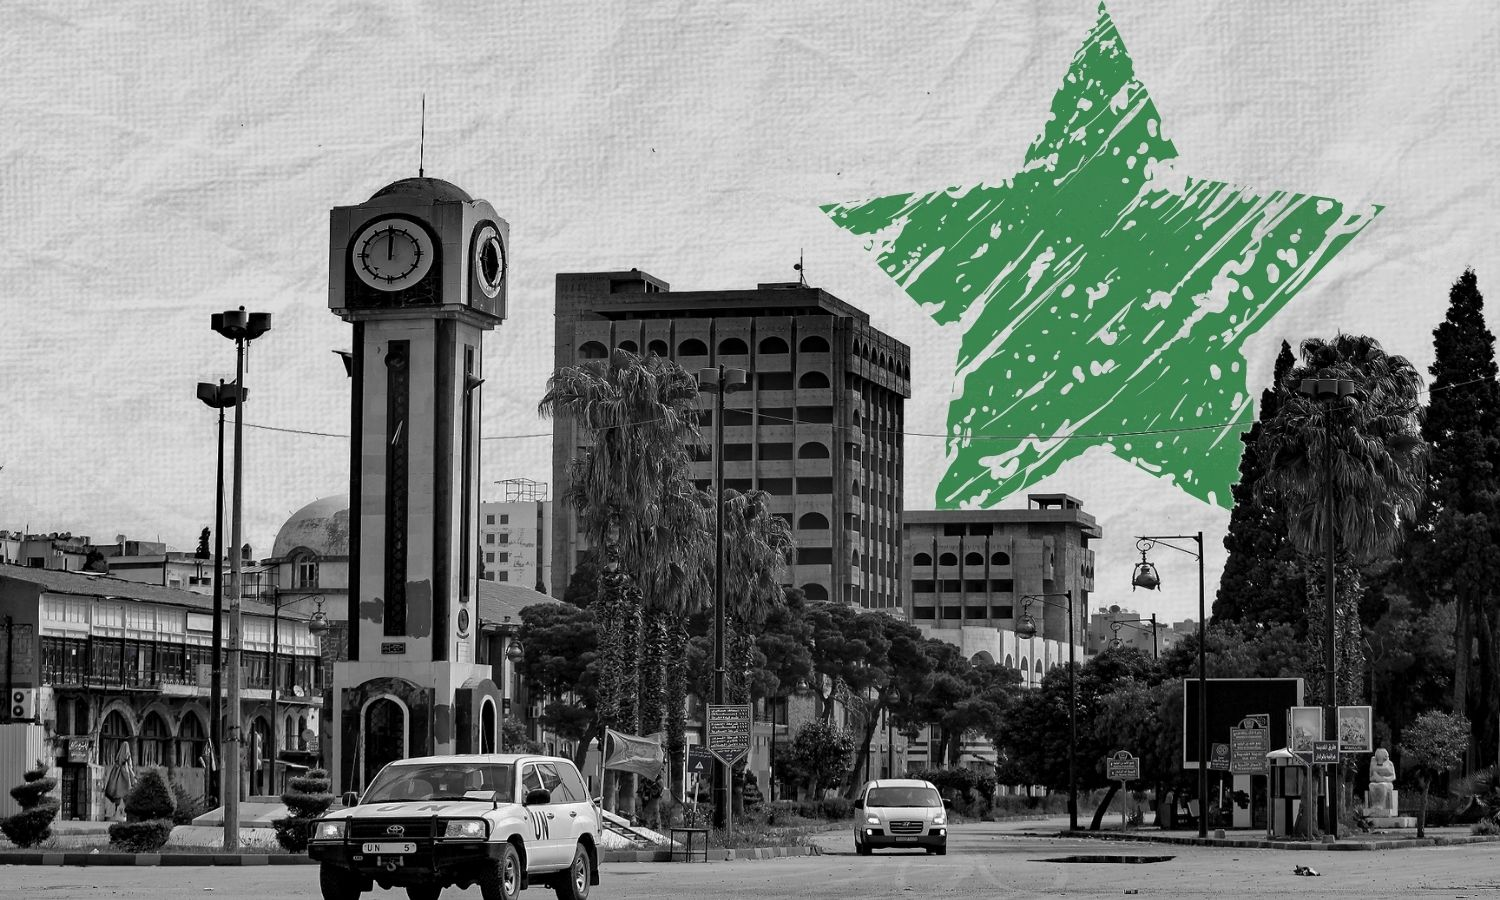 The Clock Tower Roundabout in Homs city (edited by Enab Baladi)